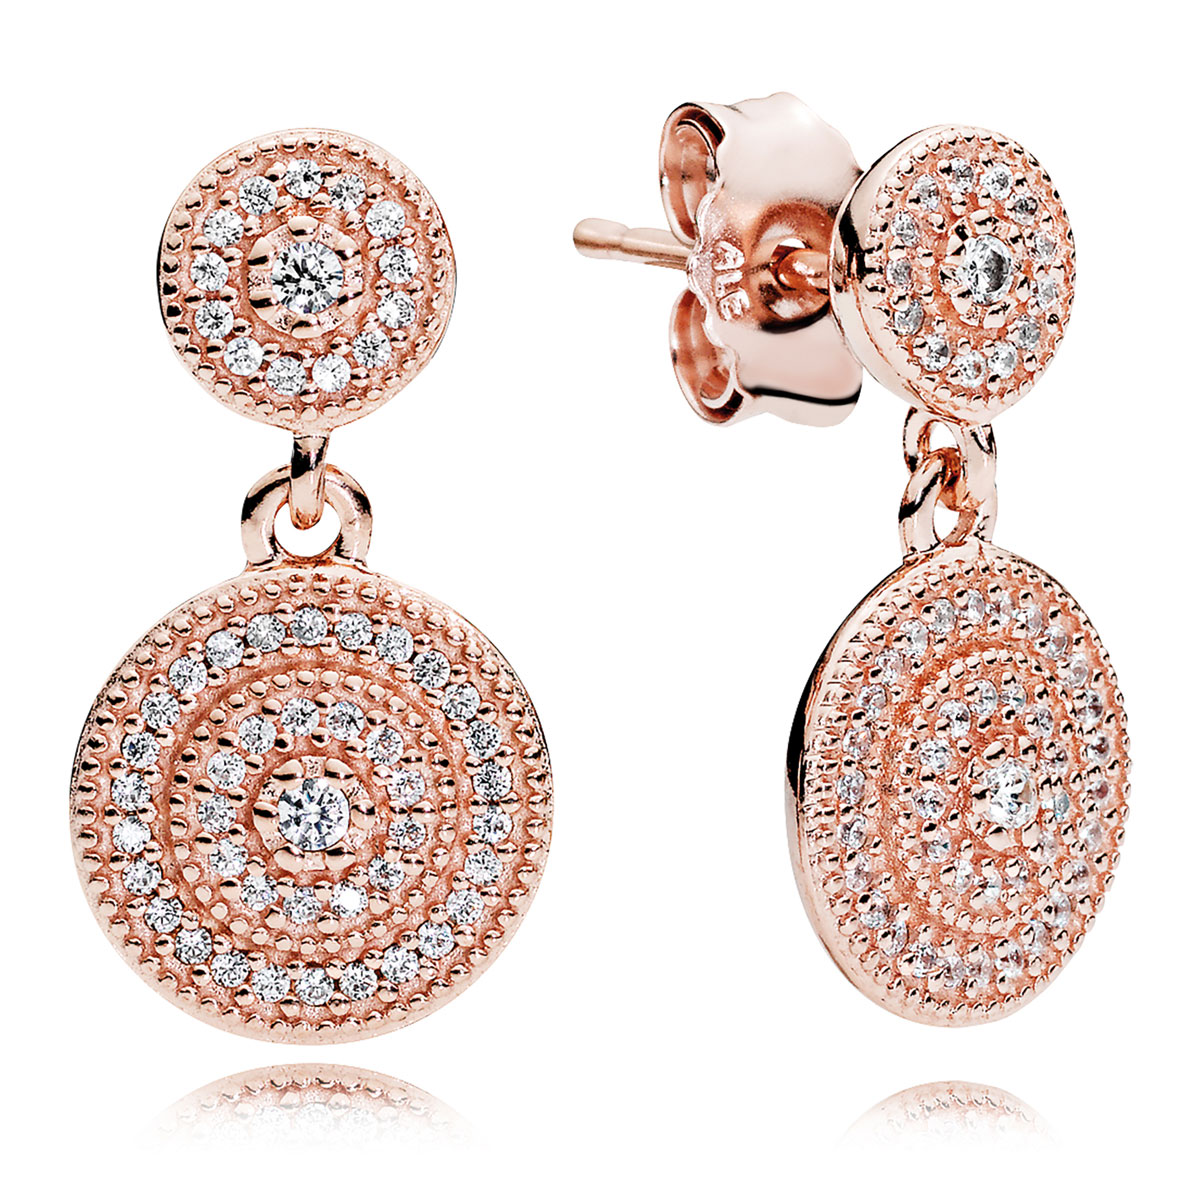 39697dc12 ... discount code for pandora rose radiant elegance clear cz earrings 442f4  0b26a